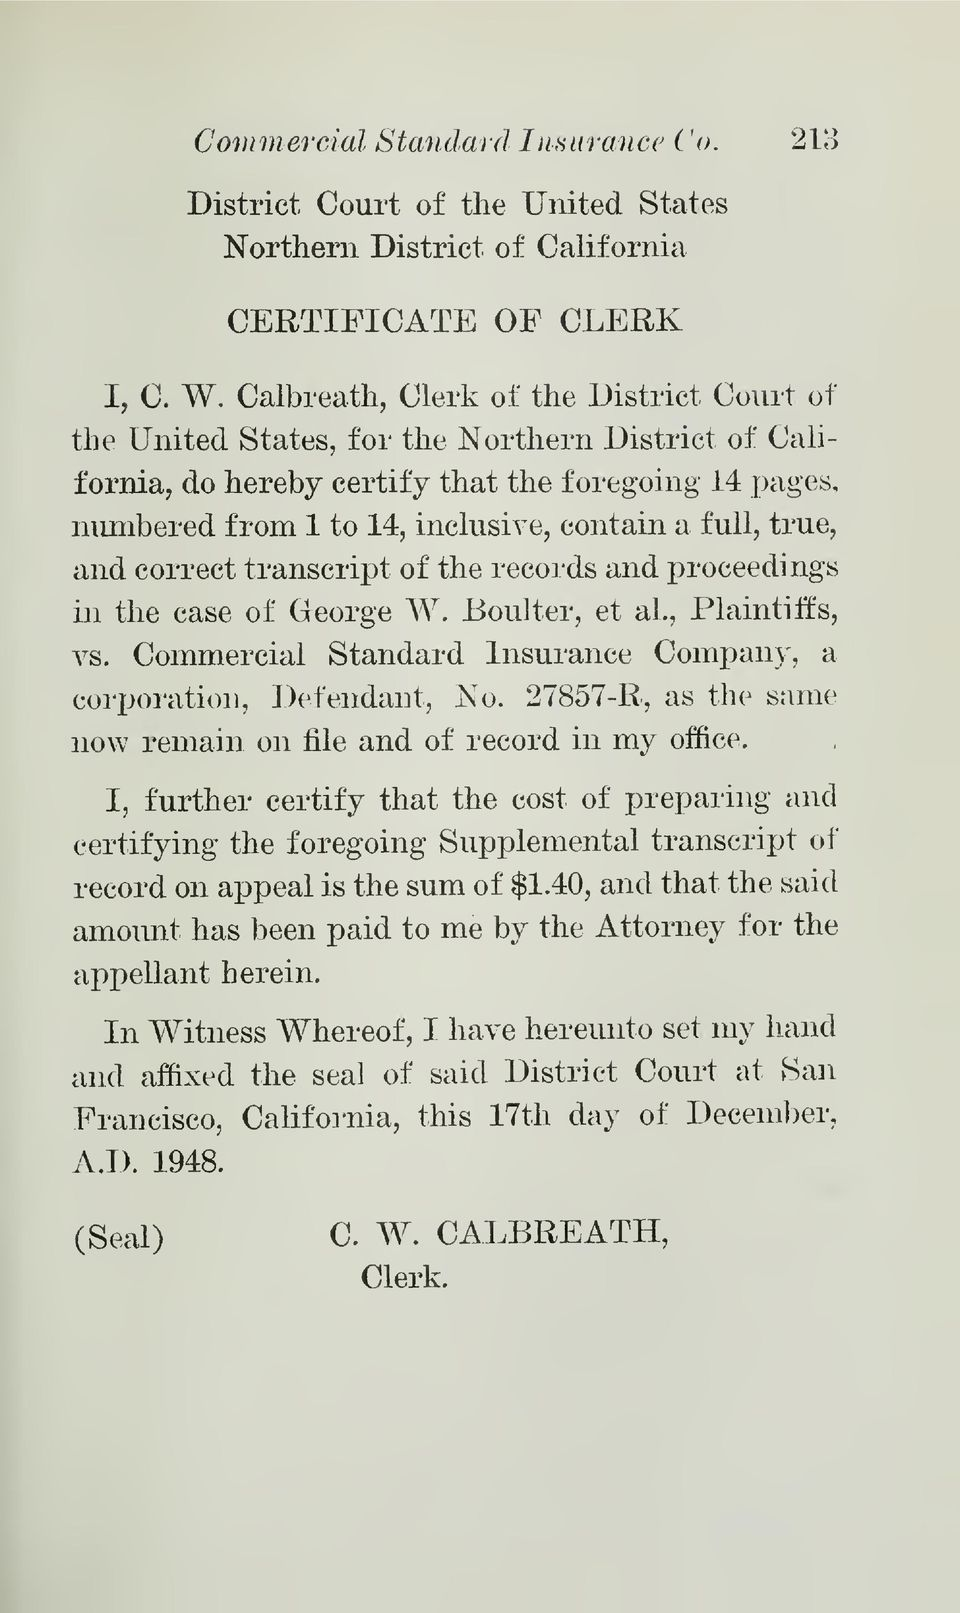 true, and correct transcript of the records and proceedings in the case of George W. Boulter, et al.. Plaintiffs, vs. Commercial Standard Insurance Company, a corporation, ])efendant, No.